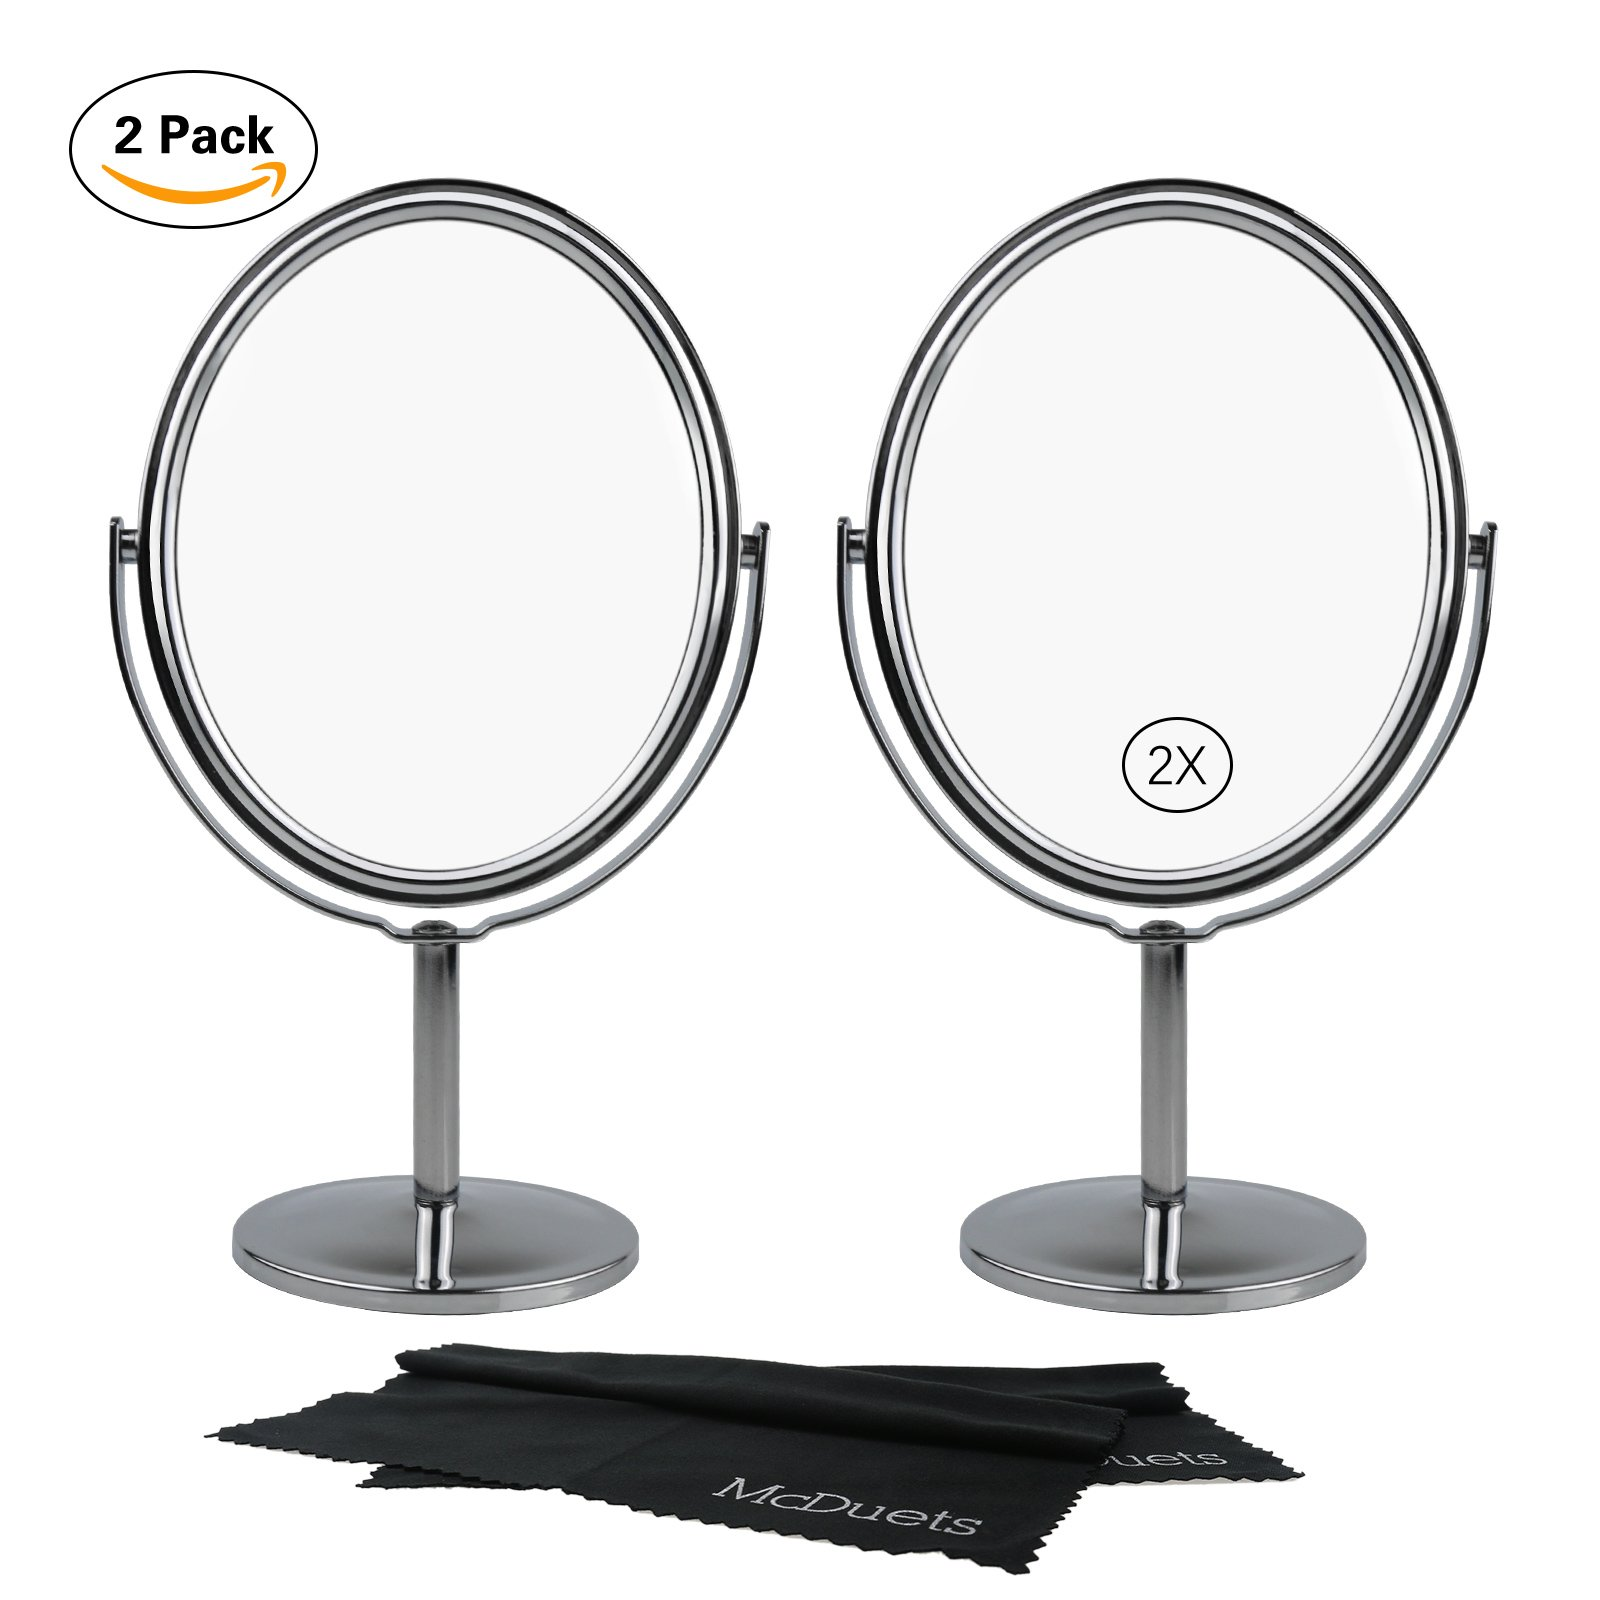 McDuets Small Makeup Mirror with Stand | Pack of 2 | Two-sided 360 Degree Swivel Vanity (1x-2x) Magnification Tabletop | Gift for Women, Girls, Dolls | Choose Color/Size (Silver, 4'' Oval)